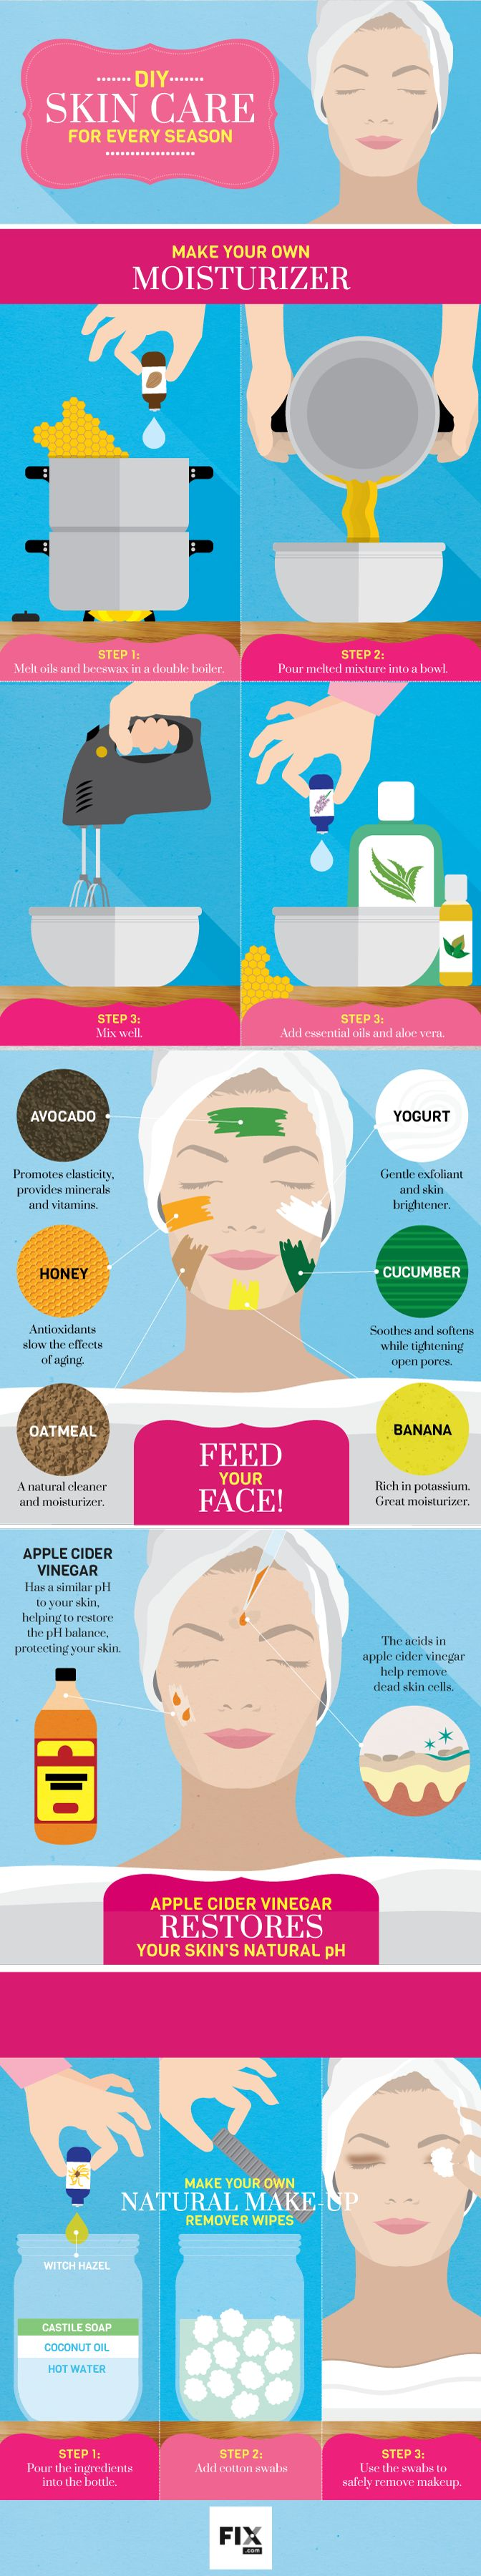 DIY Skin Care for Every Season #infographic #Skincare #Health